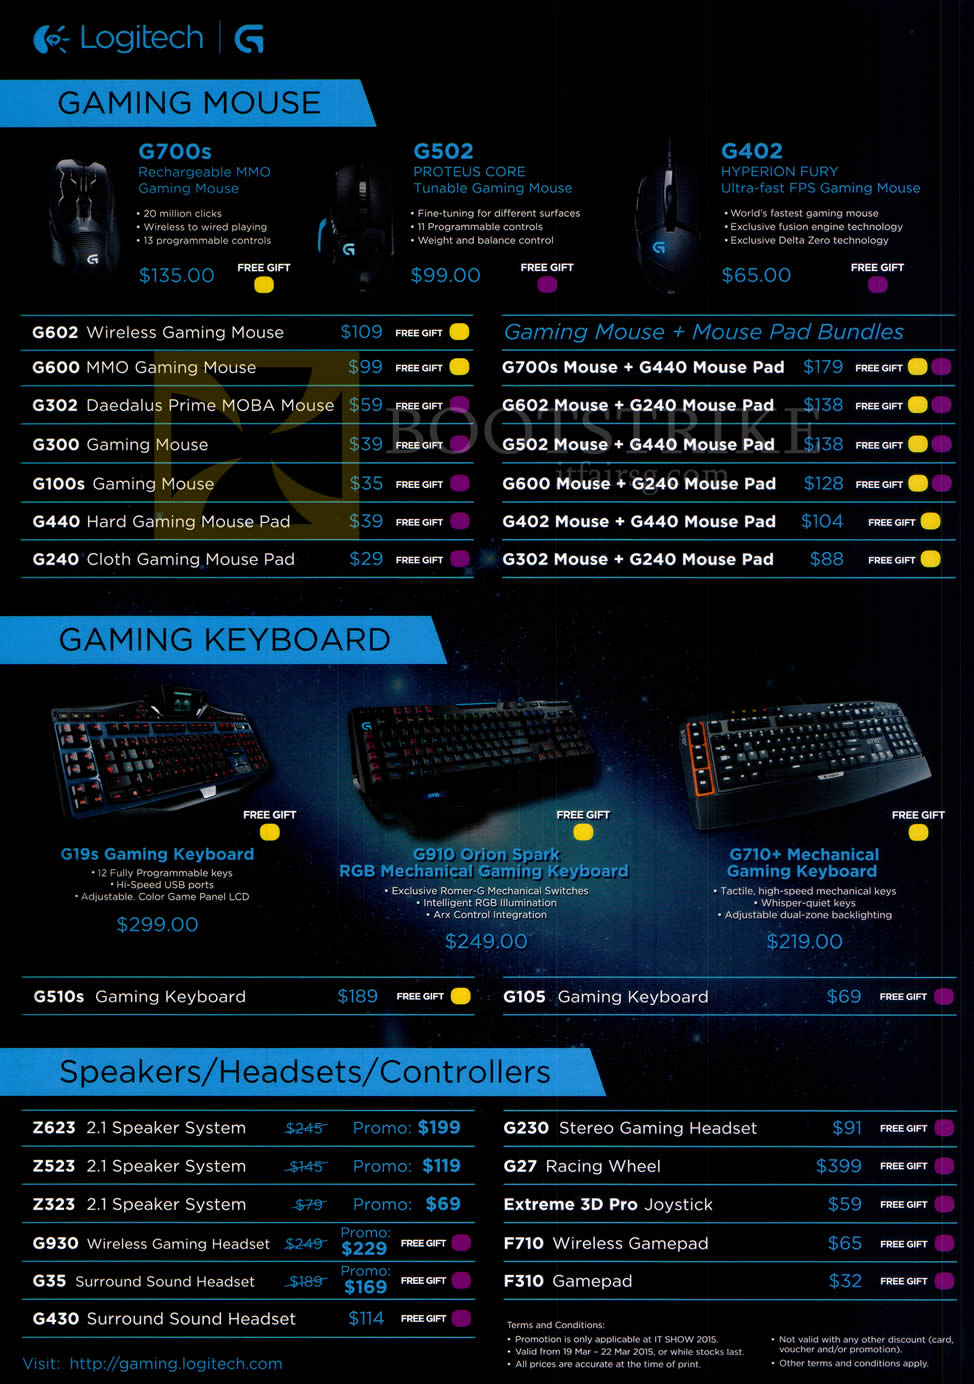 IT SHOW 2015 price list image brochure of Logitech Gaming Mouse, Keyboards, Speakers, Headsets, Controllers, G700S, G502, G402, G302, G19s, G910, G710Plus, Z623, Z323, G35, G430, G230, G27